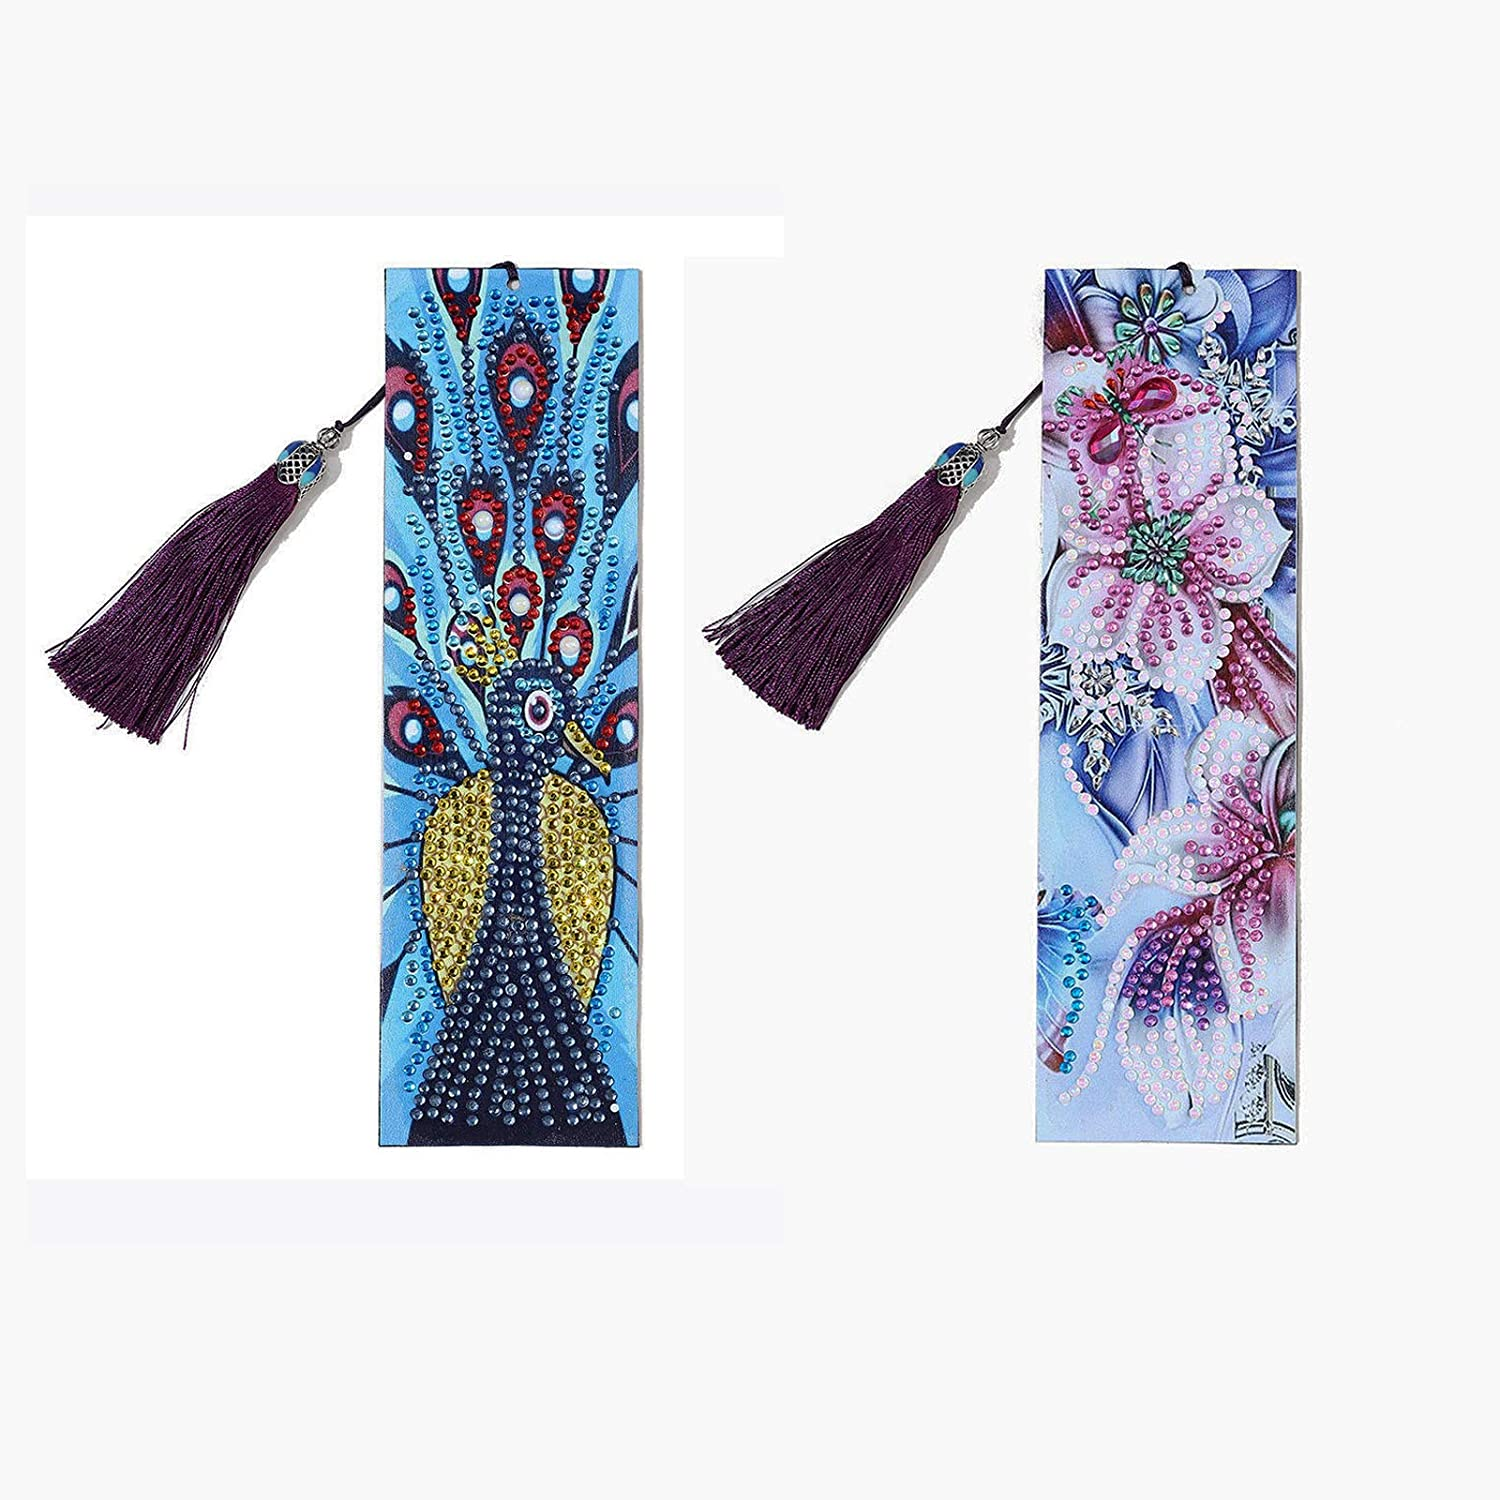 ZIIVARD Bookmark 5D Diamond Painting Peacock Butterfly Datura Flowers with Leather Tassel,Full Drill Beaded Book Mark for Valentines Birthday Embroidery Arts Crafts Gifts (Peacock & Flower)